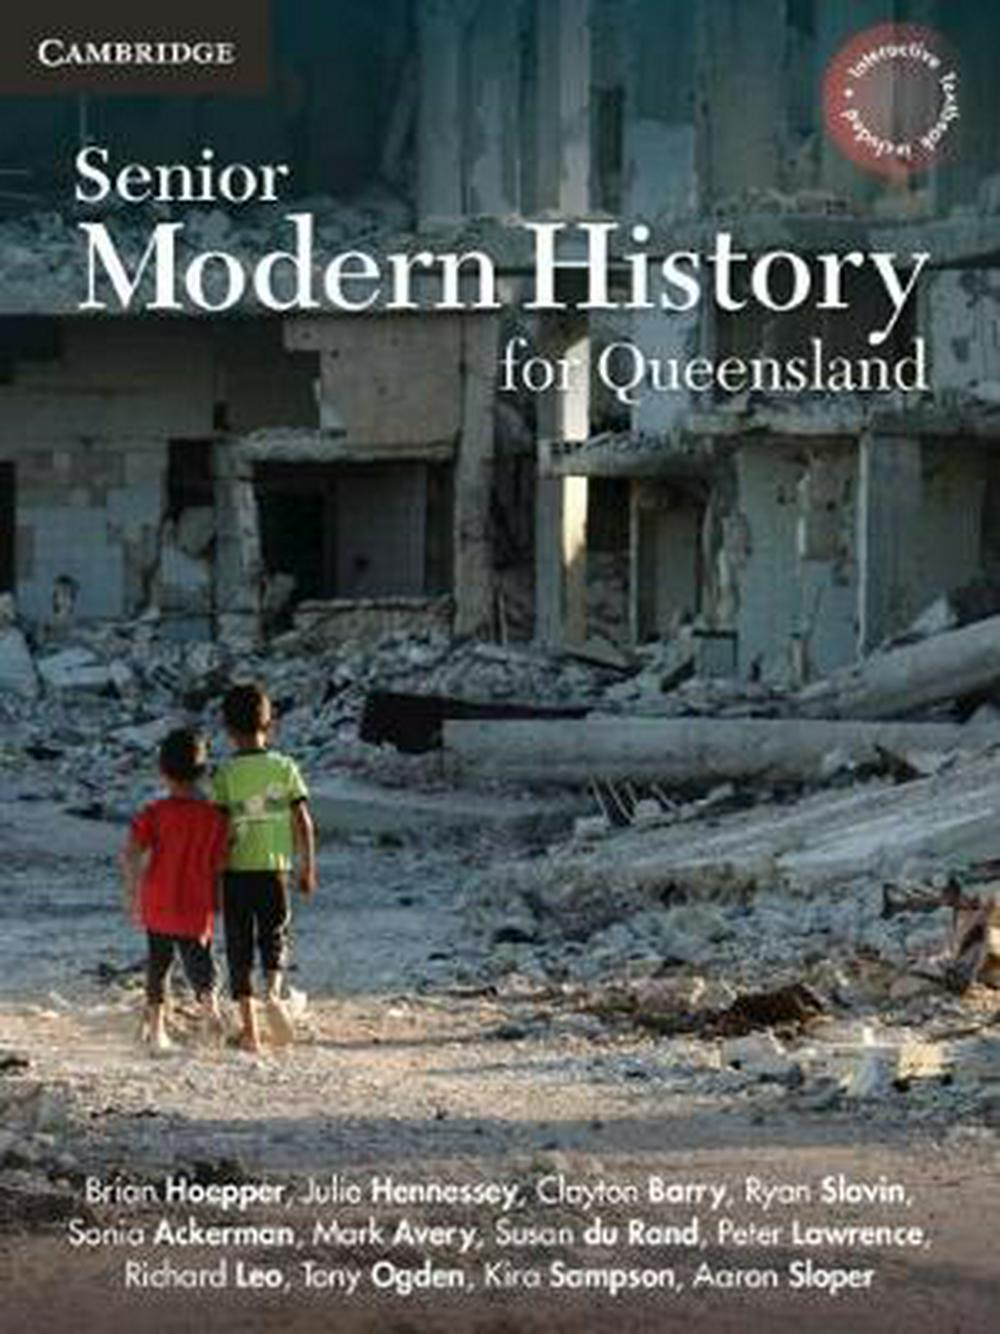 Senior Modern History for Queensland Units 1-4 by Brian Hoepper, ISBN: 9781108469418